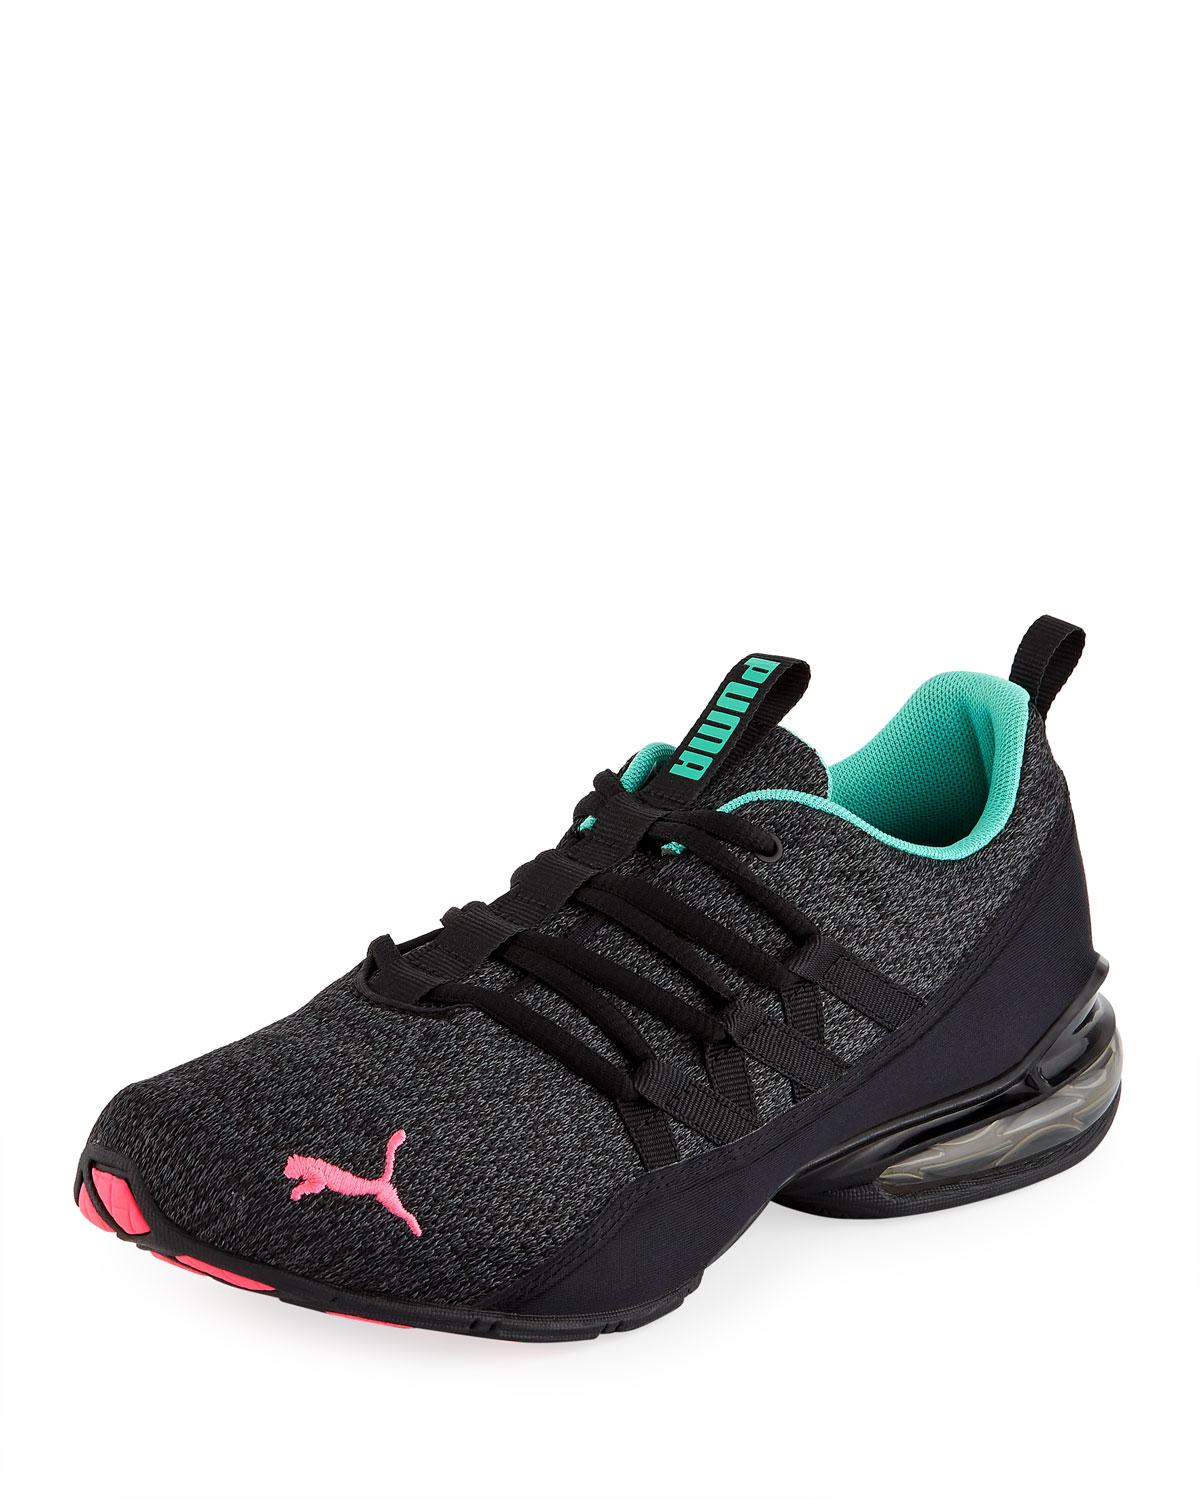 a925e330a22 Lyst - PUMA Riaze Prowl Padded Sneakers